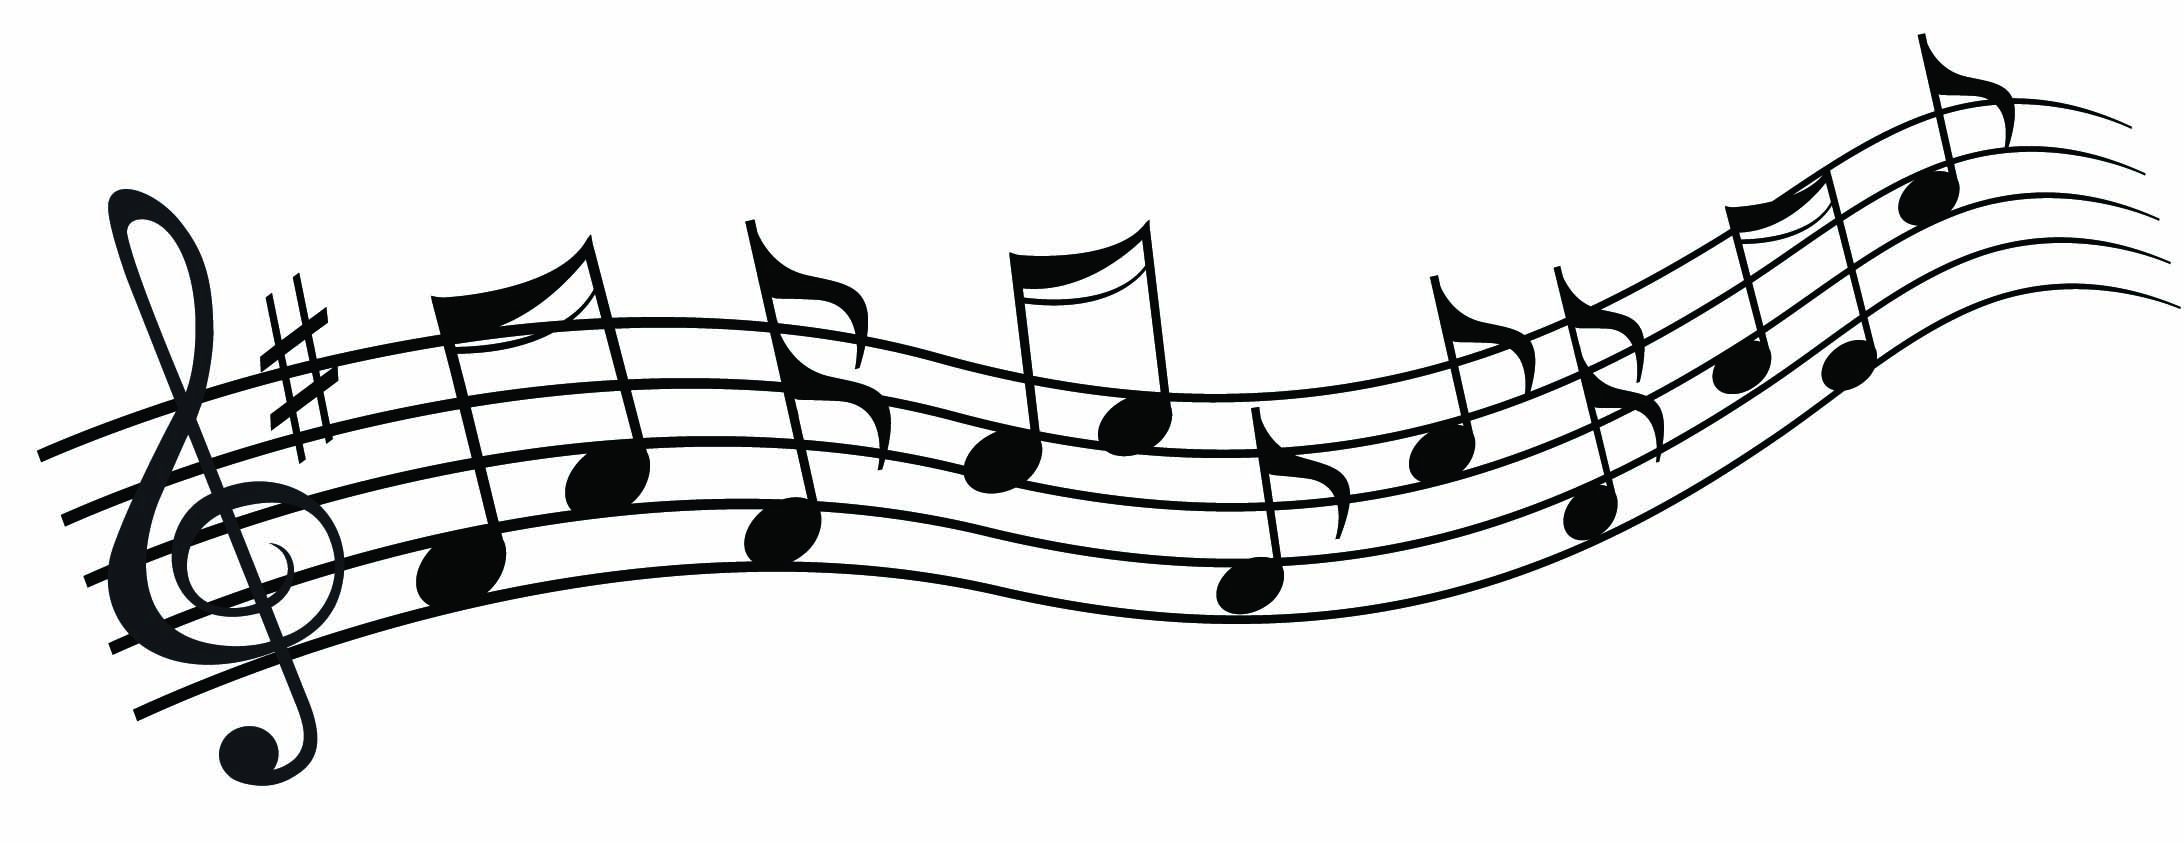 Music notes  black and white music notes clipart black and white free 2 wikiclipart